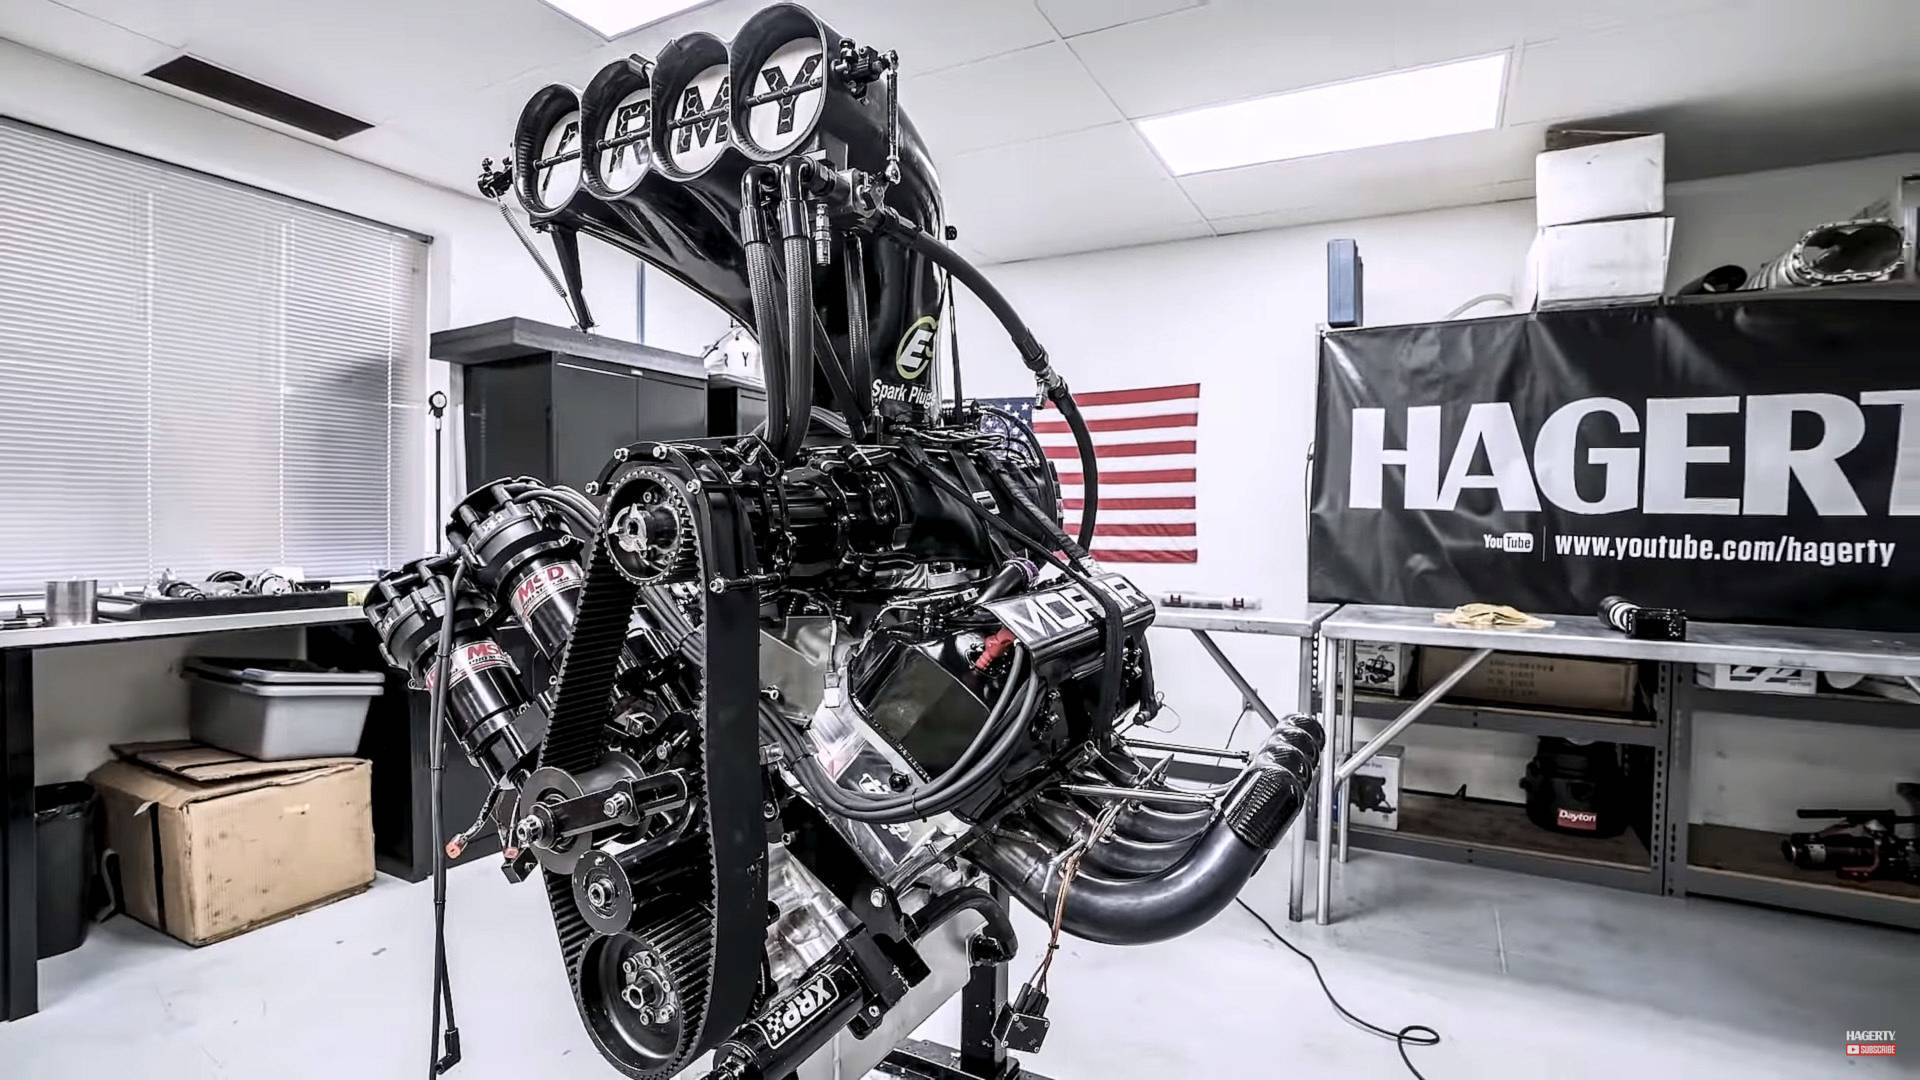 See This 11,000 Hp Dragster V8 Engine Get Rebuilt In 7 Minutes